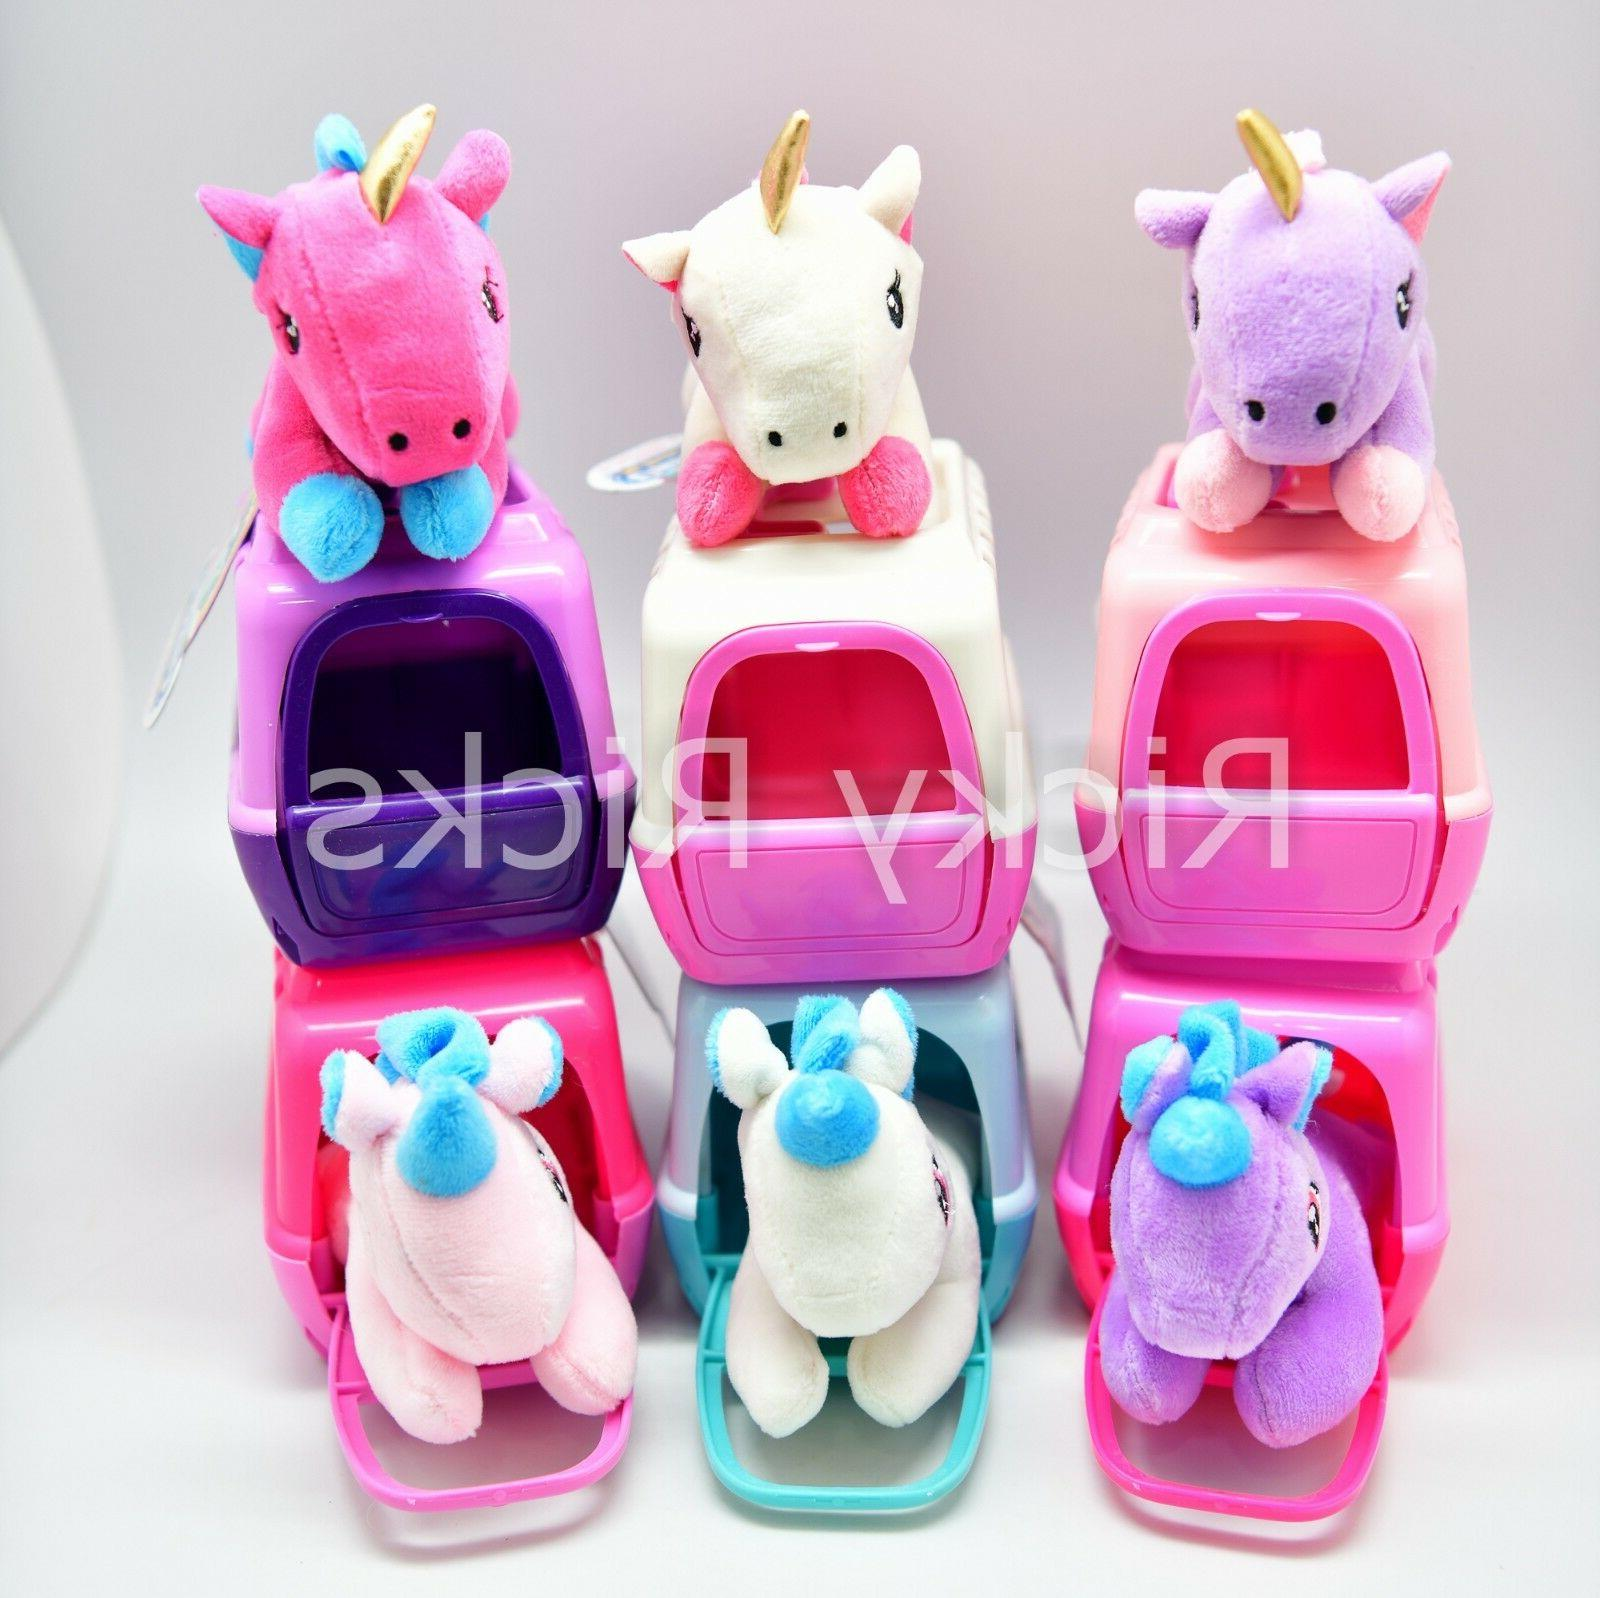 1 Toy Carrying Case Kids Cute Stuffed Animal